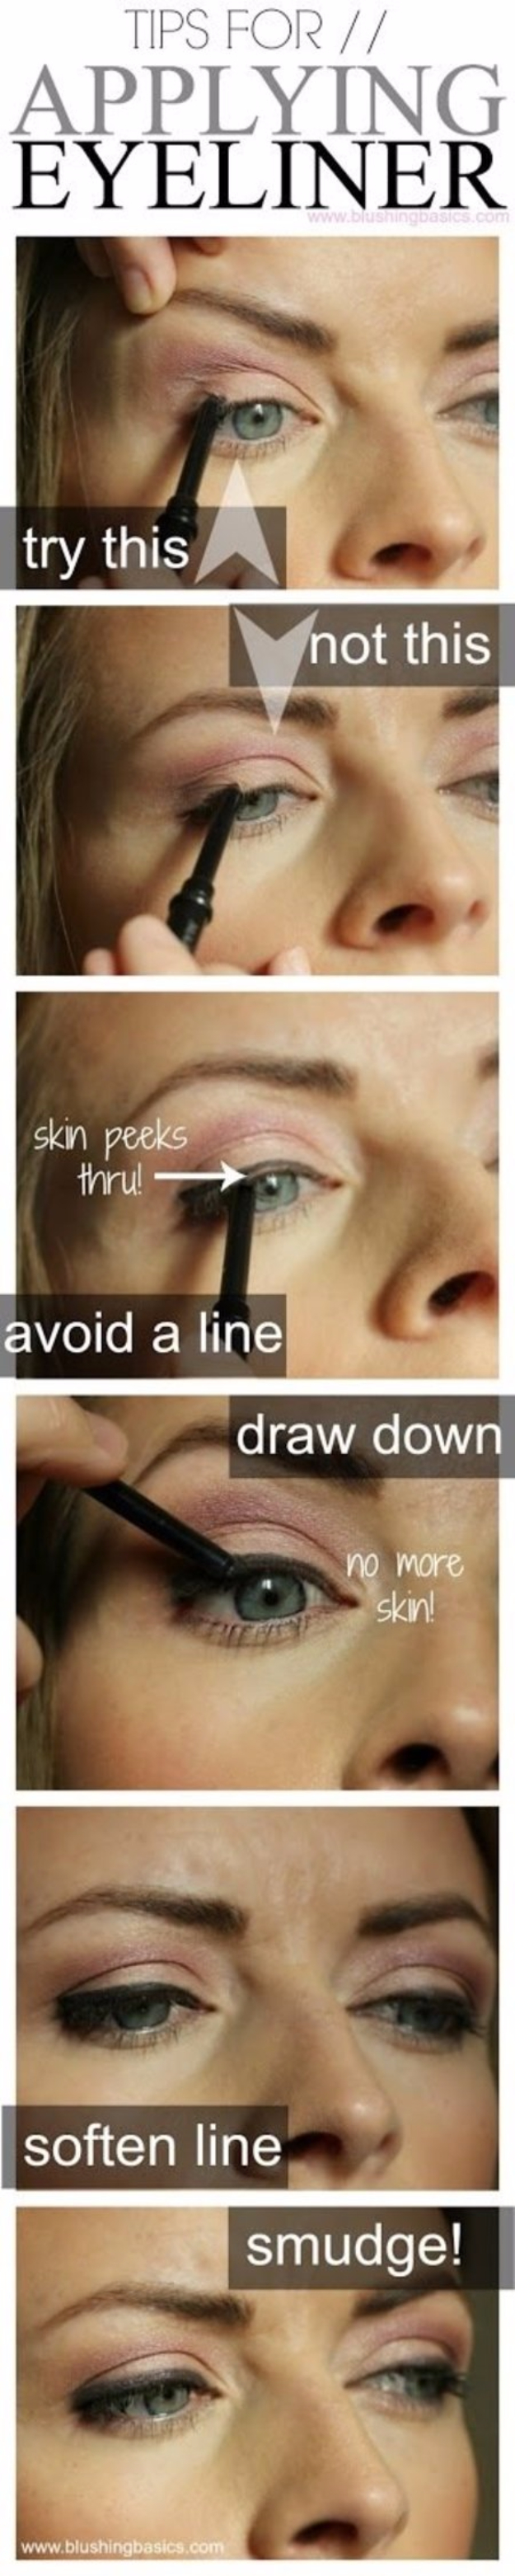 Cool DIY Makeup Hacks for Quick and Easy Beauty Ideas - Apply Eyeliner The Right Way - How To Fix Broken Makeup, Tips and Tricks for Mascara and Eye Liner, Lipstick and Foundation Tutorials - Fast Do It Yourself Beauty Projects for Women